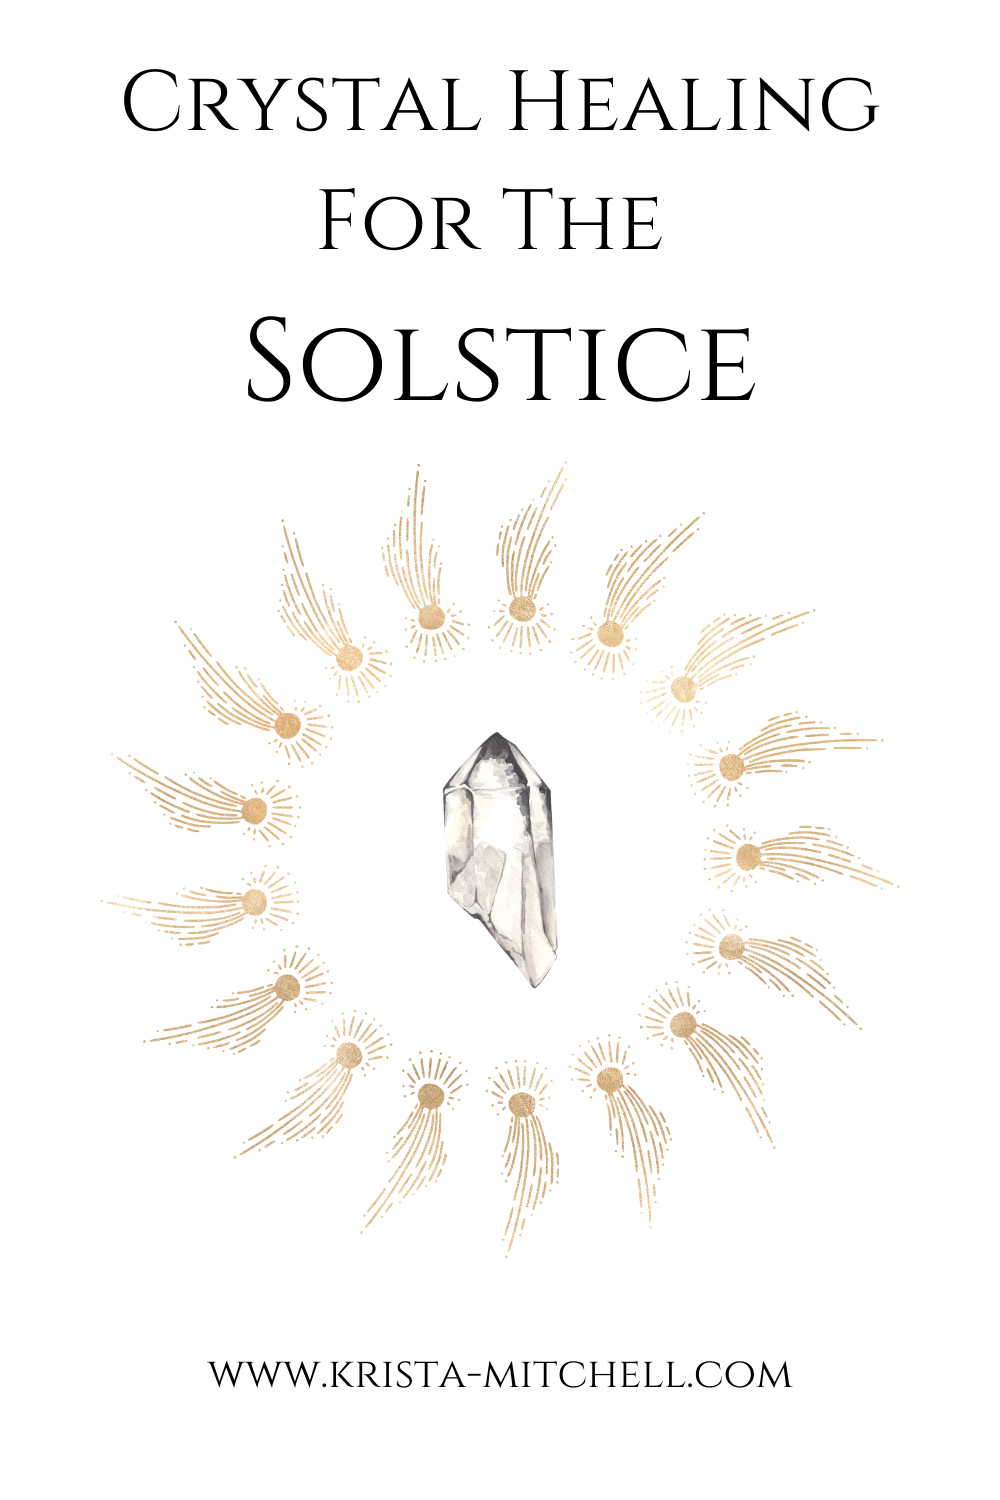 Crystal Healing for the Solstice: Beginnings and Endings / www.krista-mitchell.com